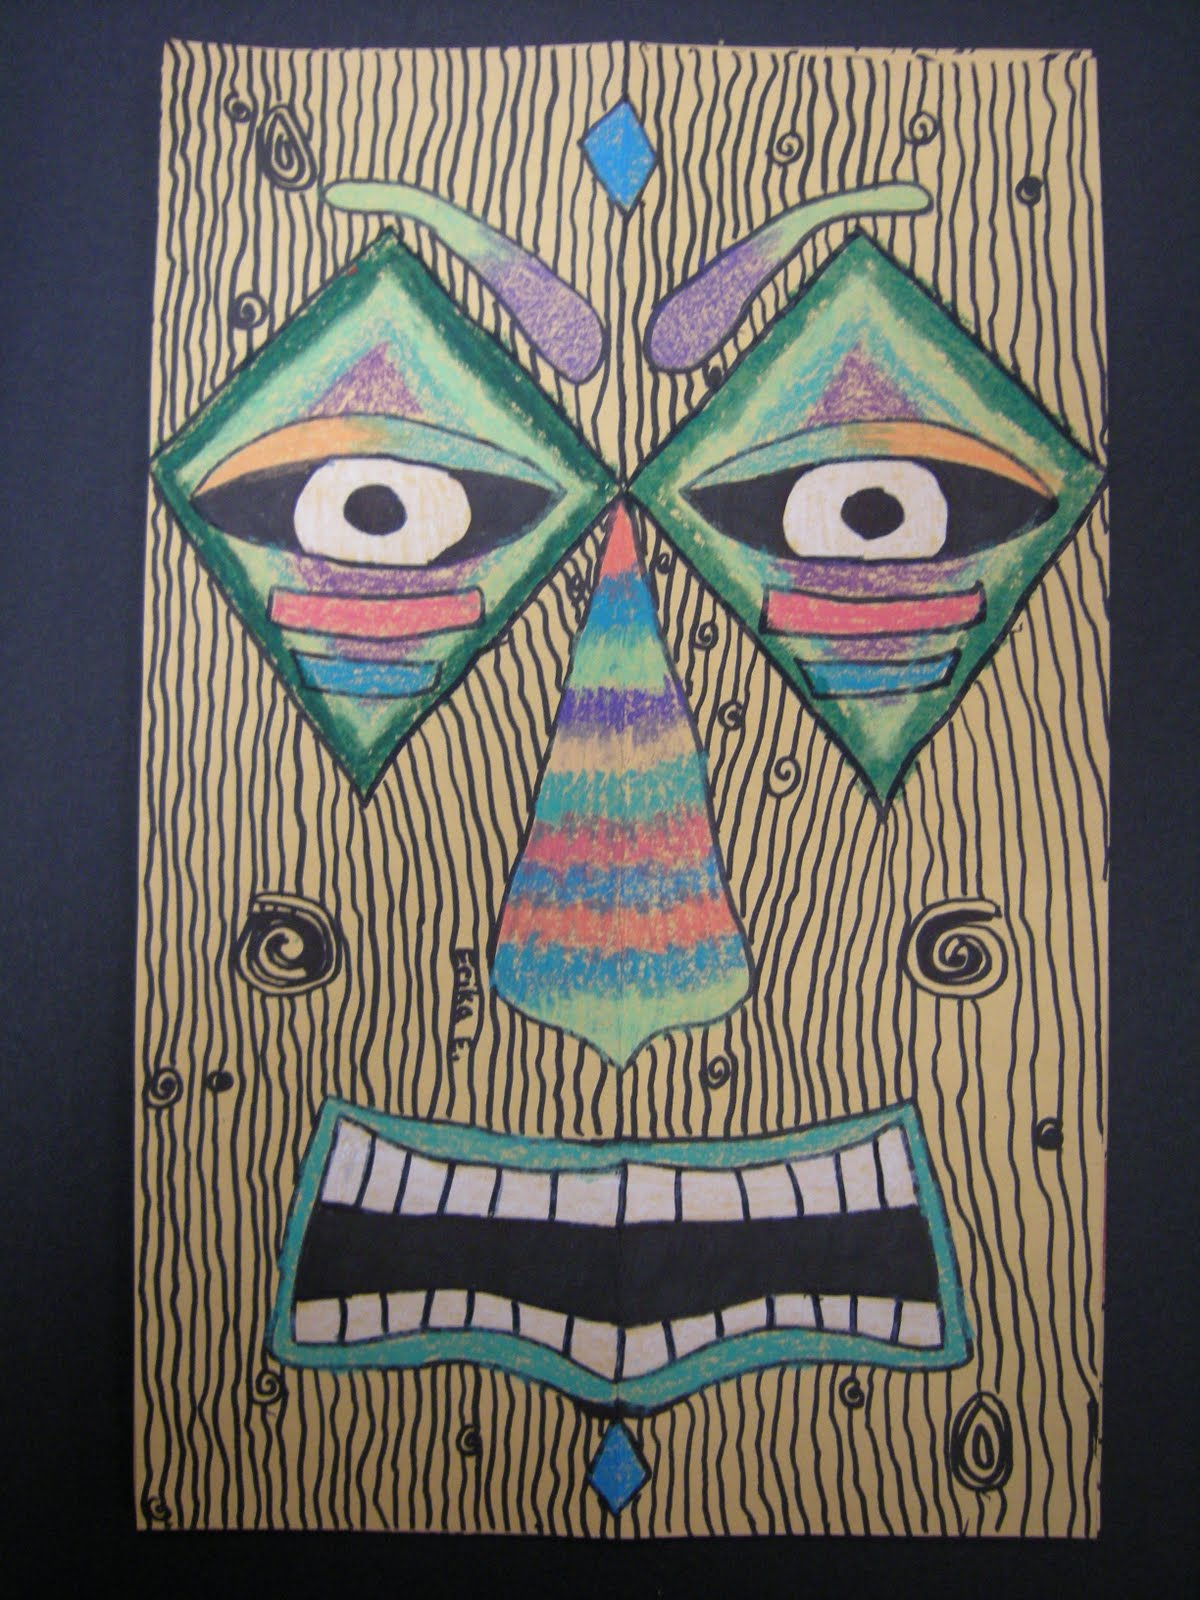 Tiki statues have been around for hundreds of years they have their